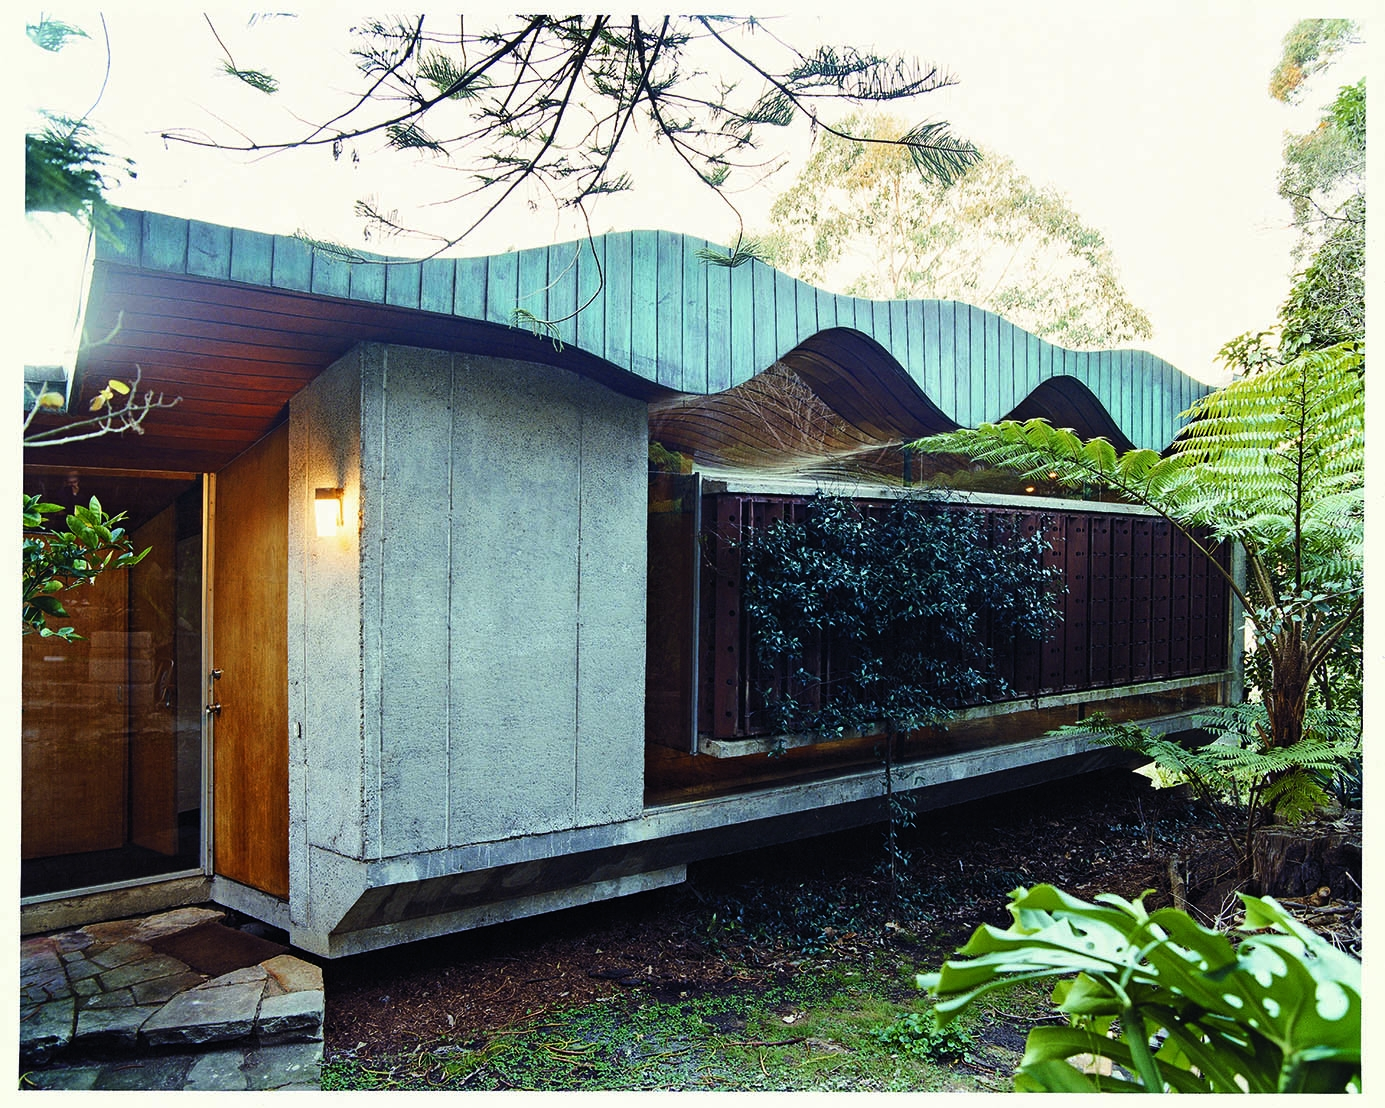 Exterior of Buhrich house showing distinctive curved roof